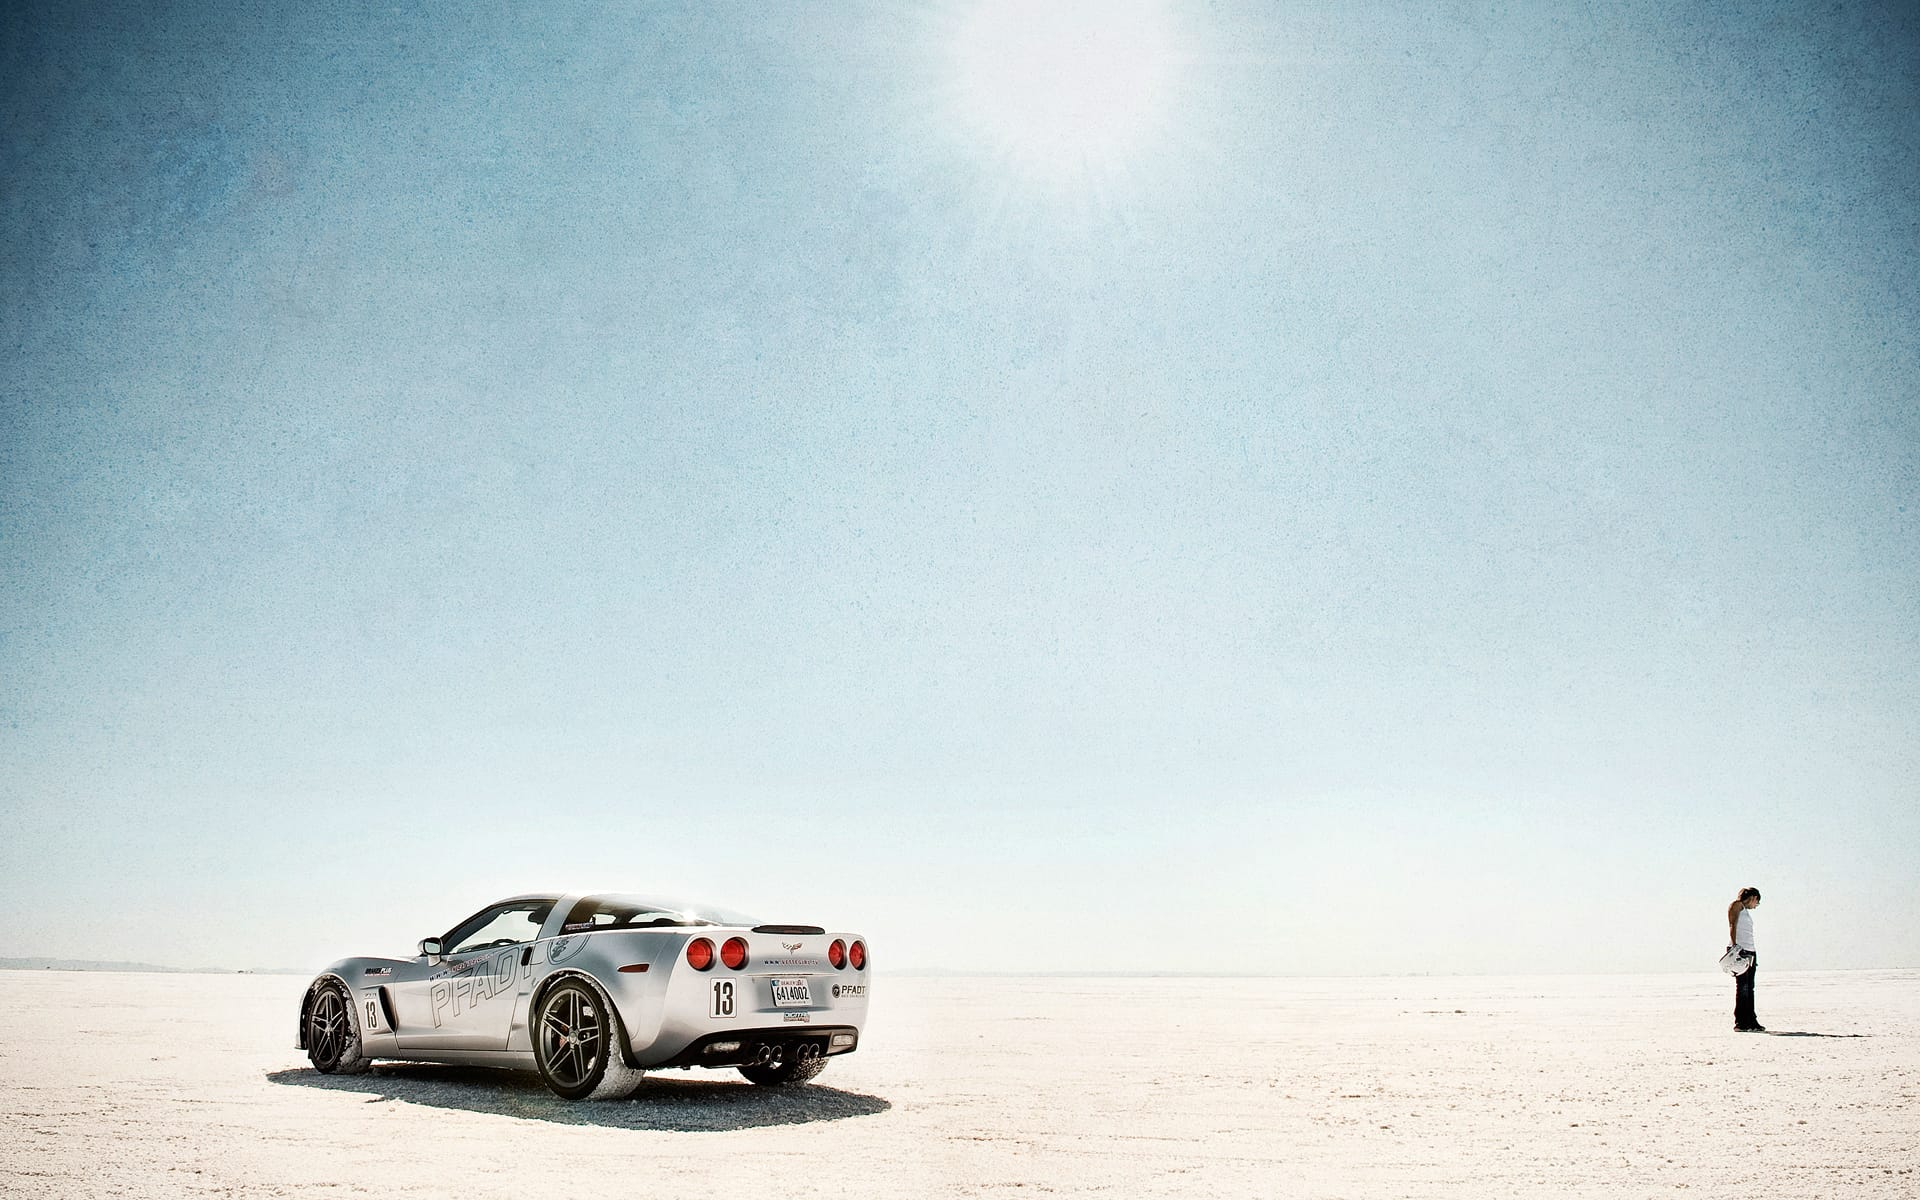 Corvette at Bonneville